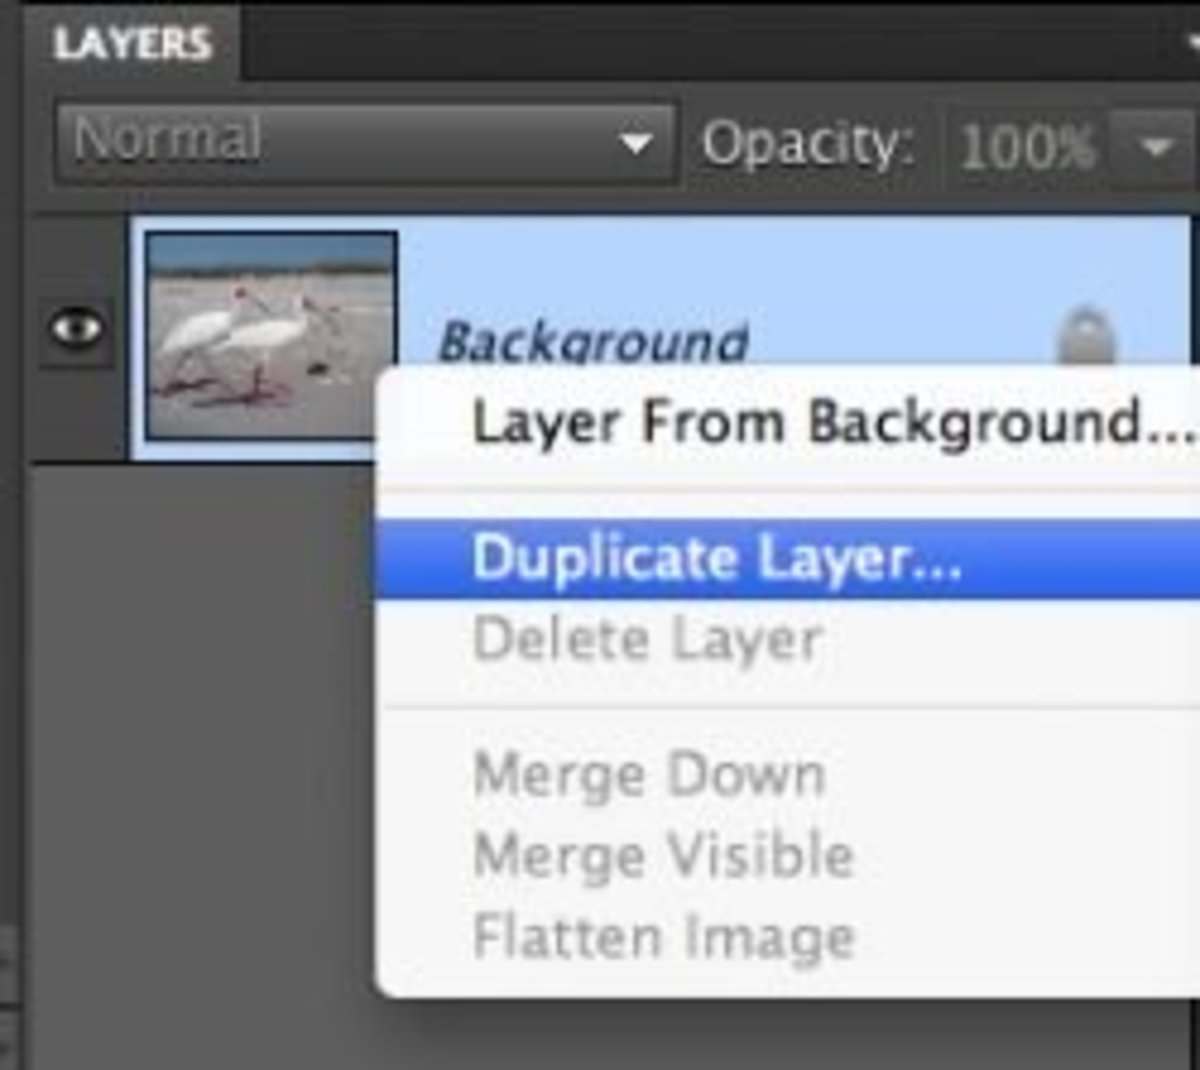 begin with a duplicate layer.